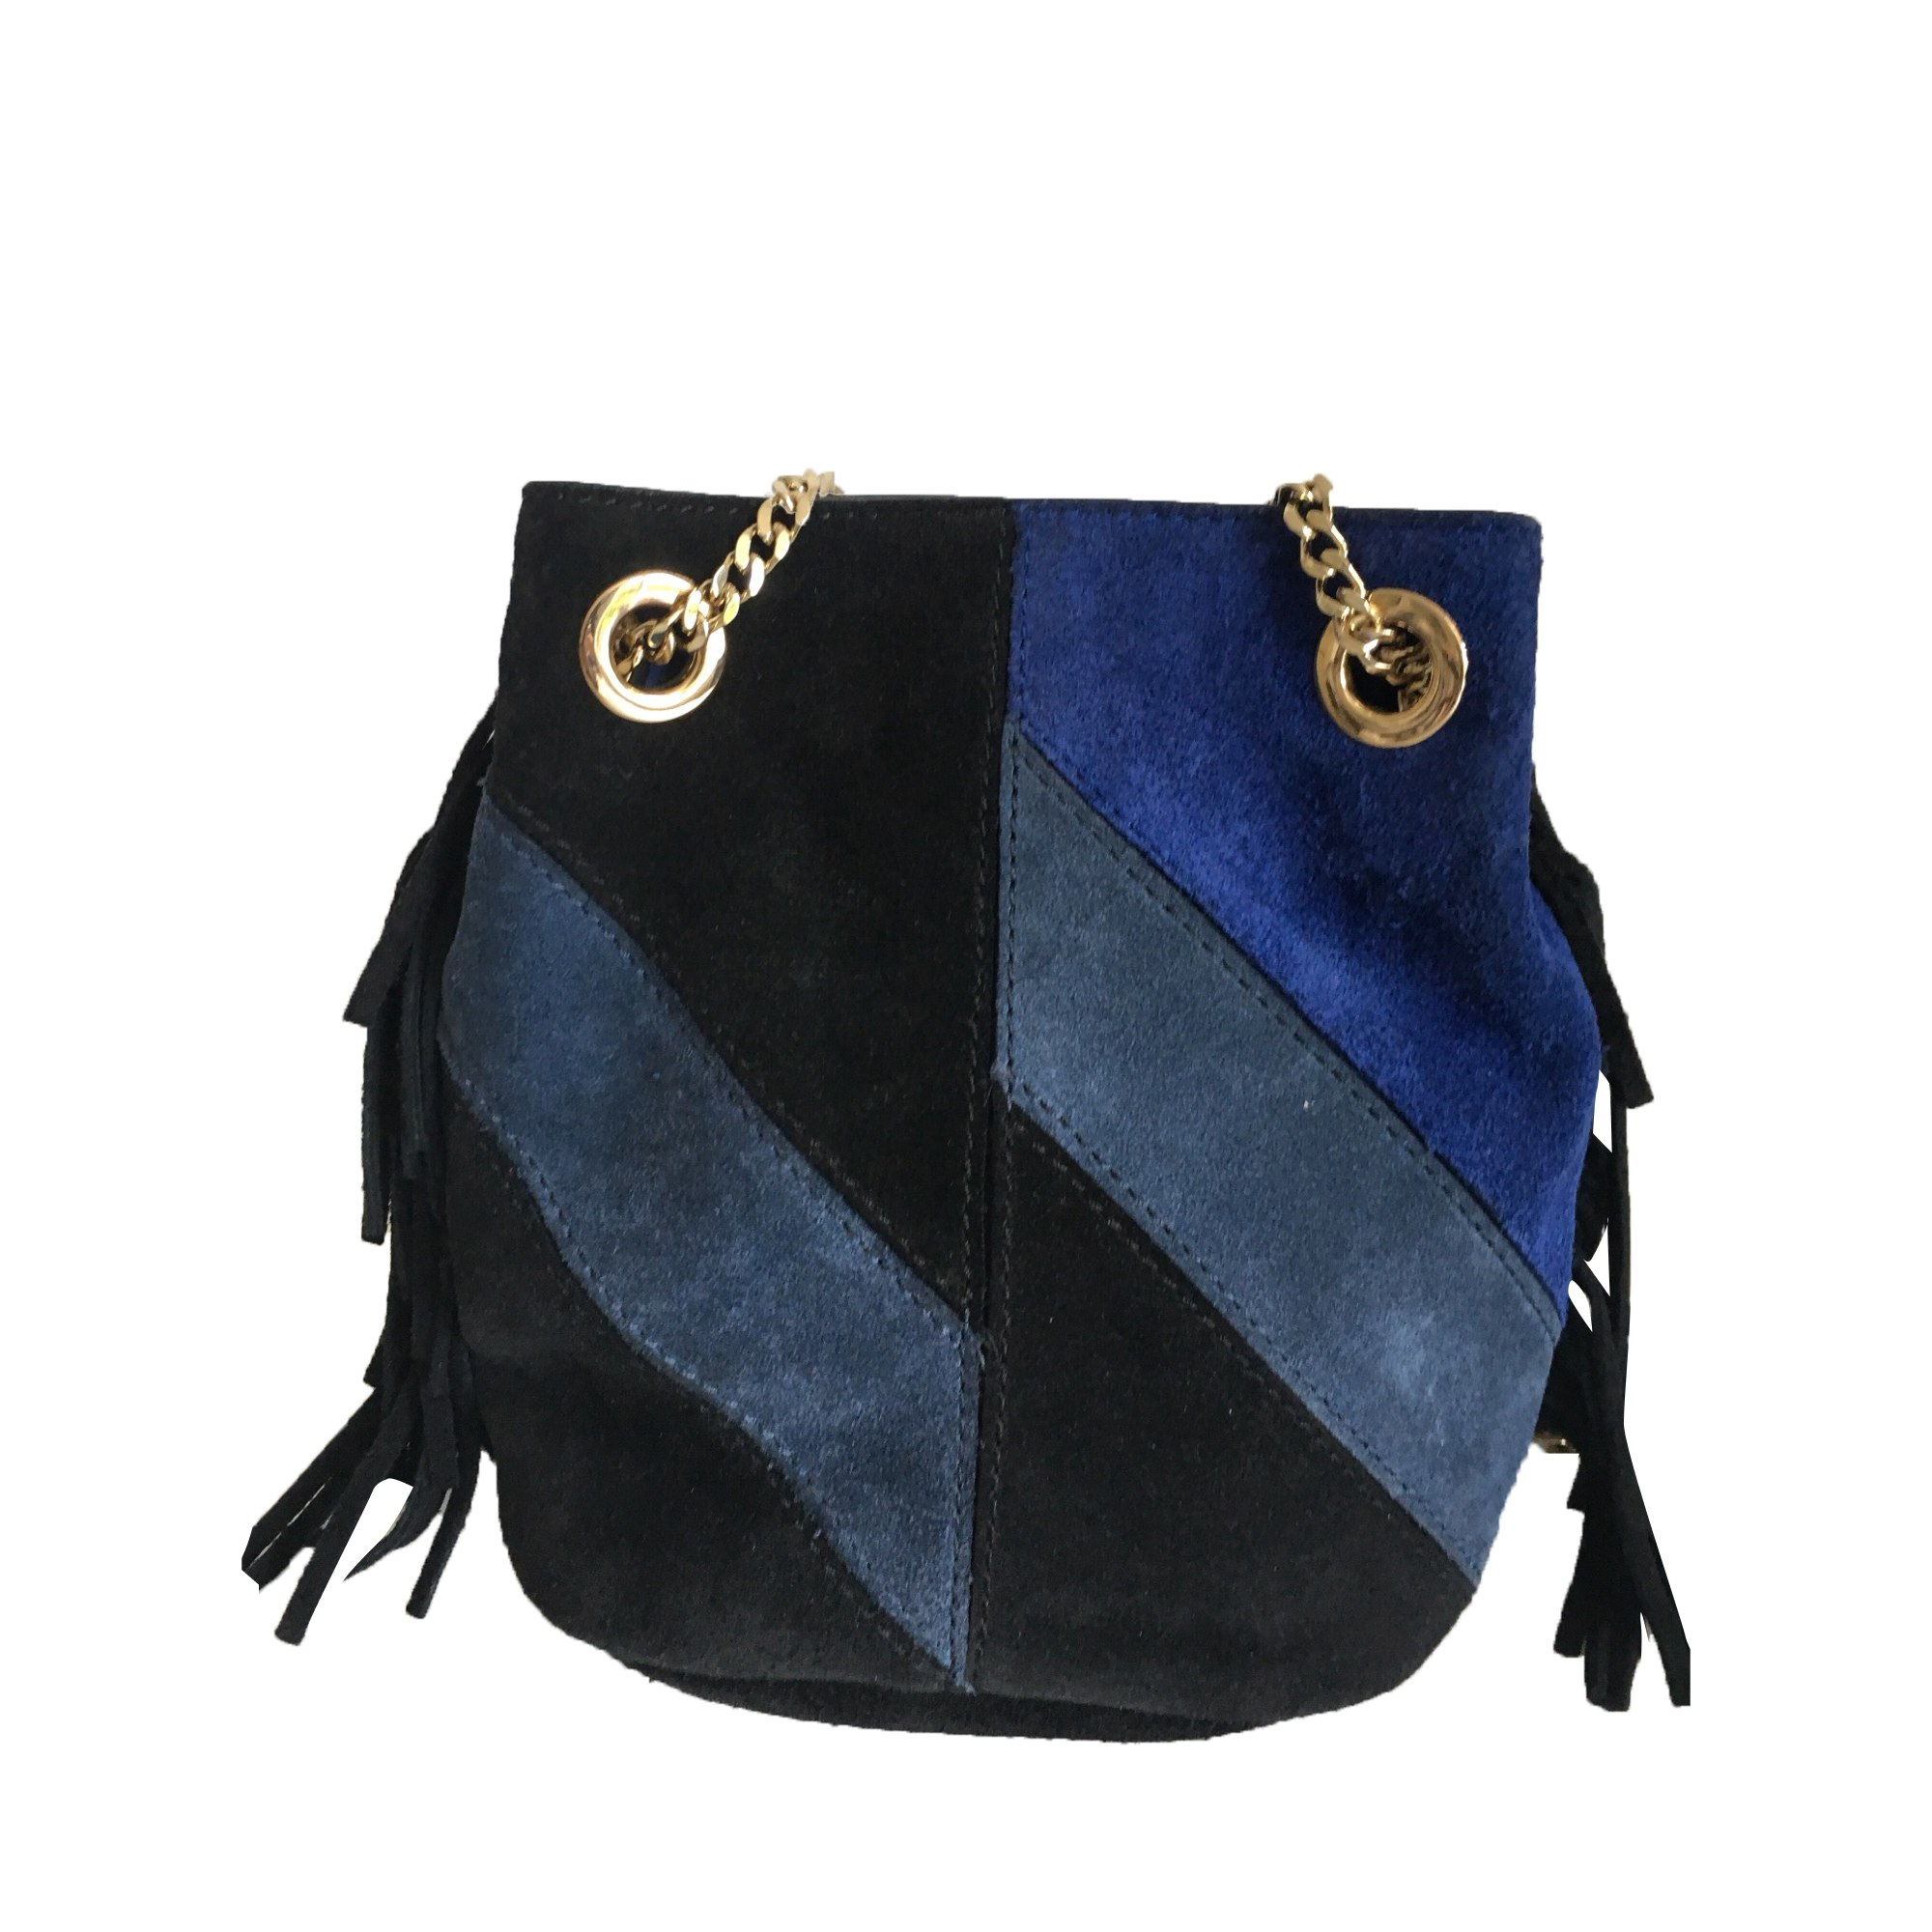 Leather Handbag MAJE Multicolor